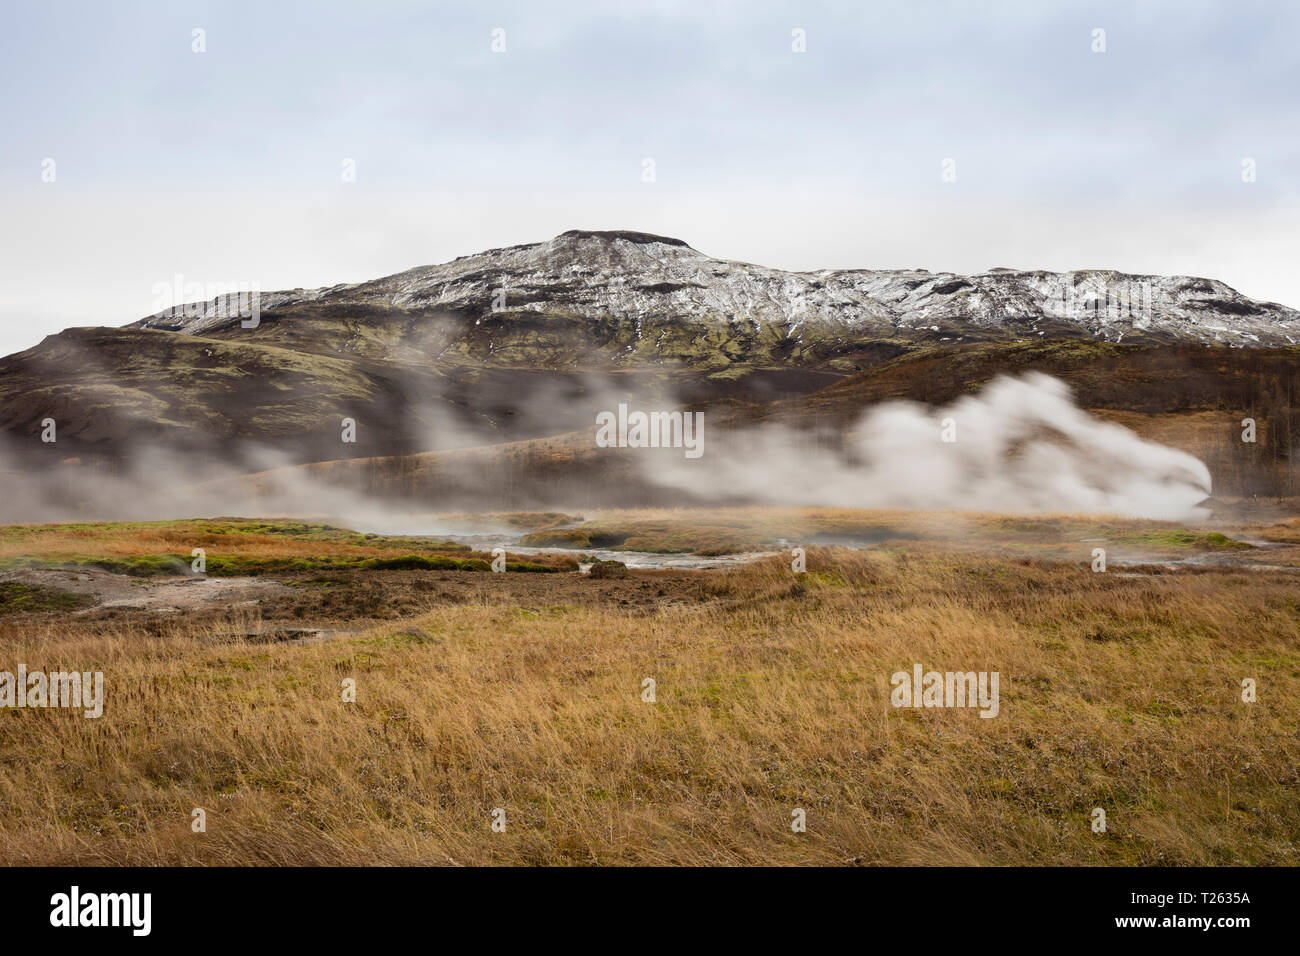 Iceand, Haukadalur valley, Geothermal site with hot spring, geyser Stock Photo